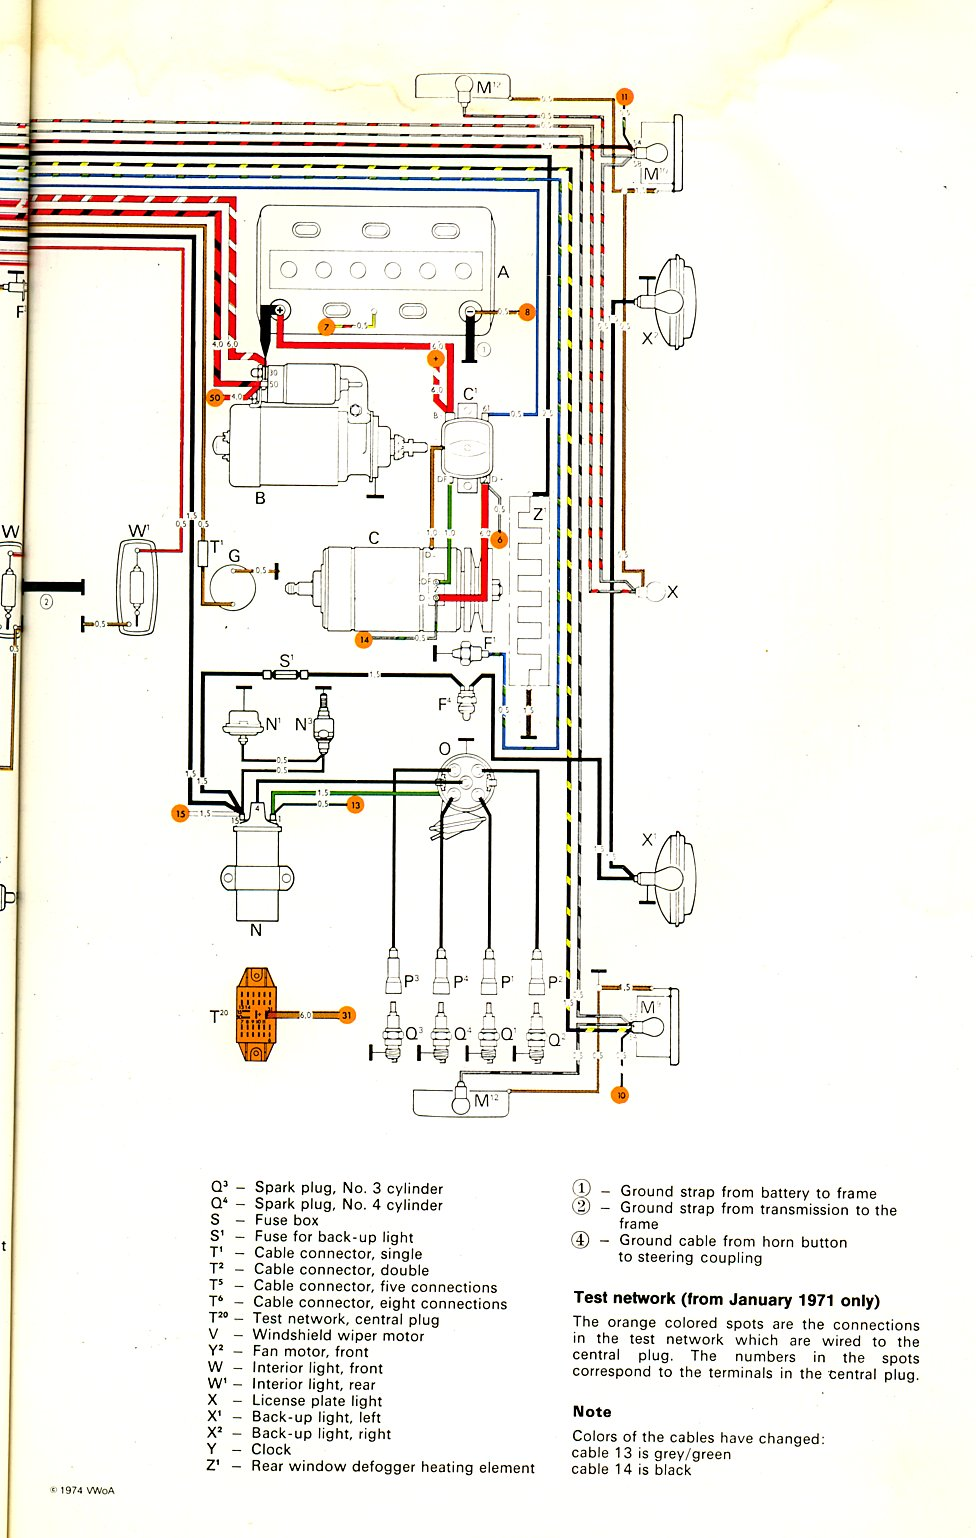 baybus_71b thesamba com type 2 wiring diagrams 1971 corvette wiring diagram at honlapkeszites.co